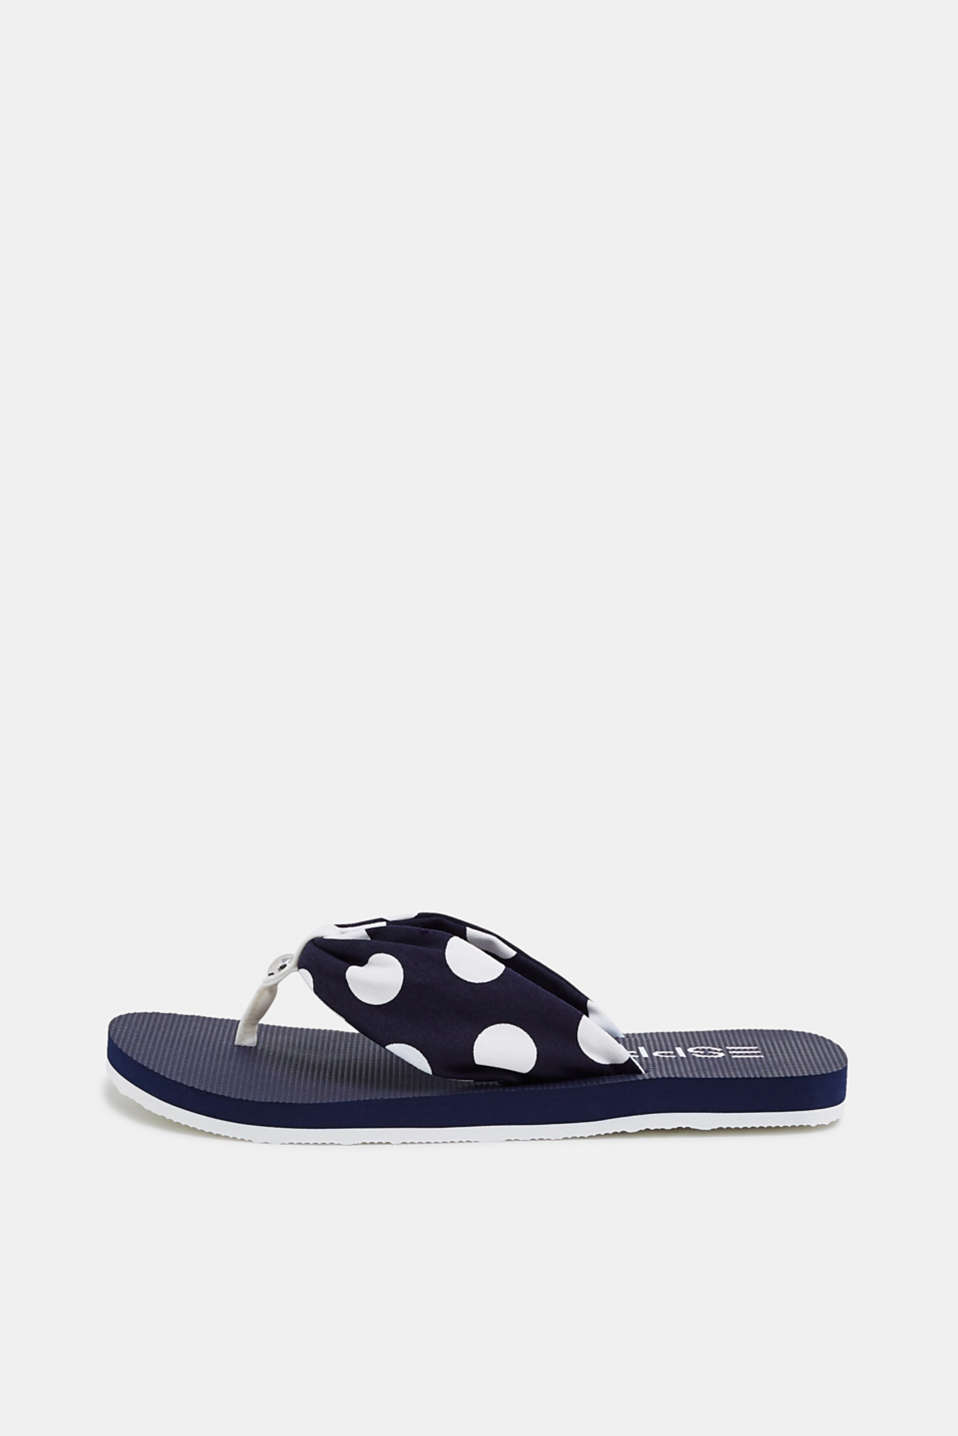 Esprit - Toe-post sandals with a polka dot woven strap